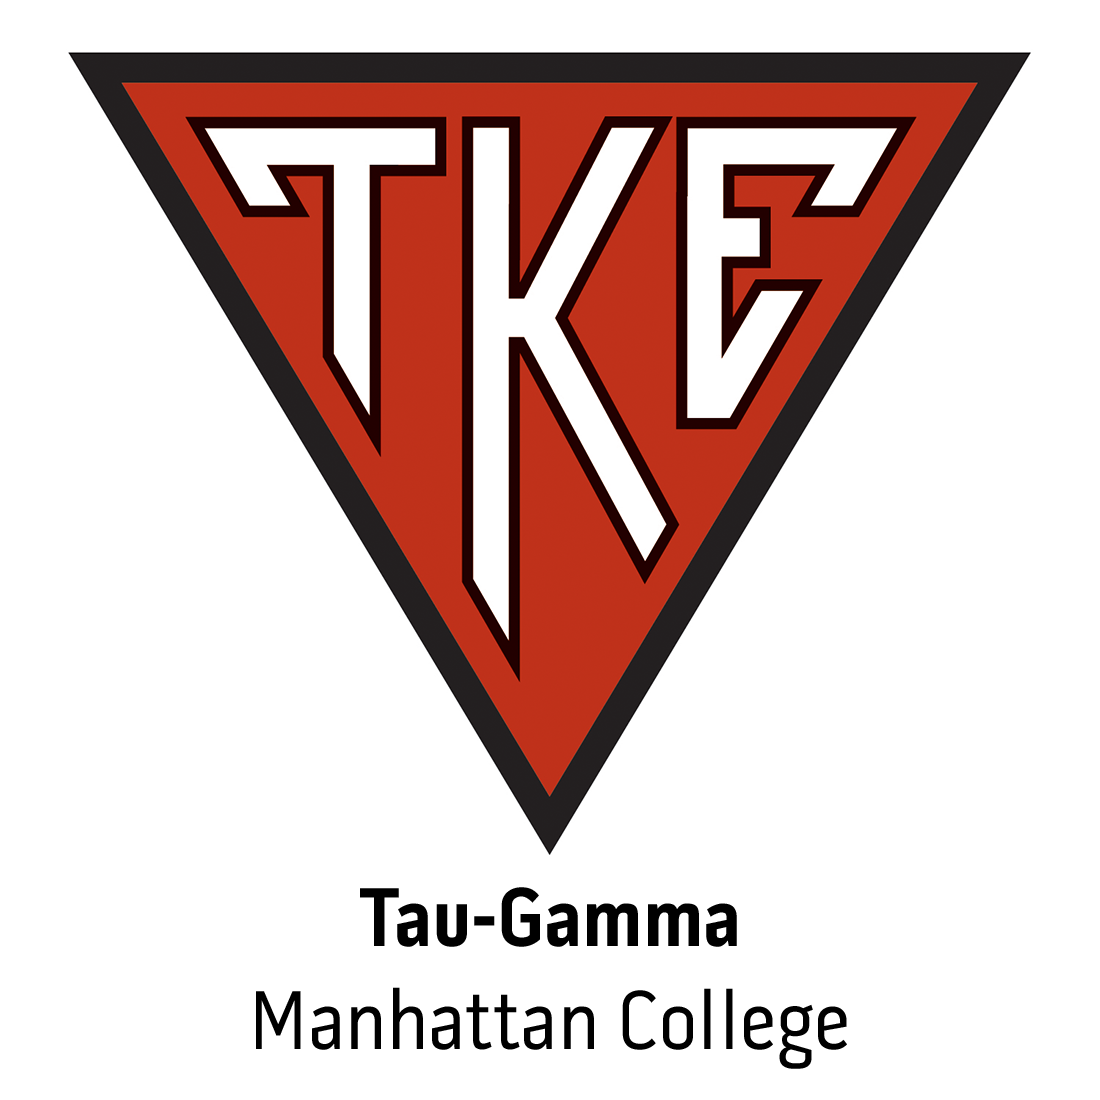 Tau-Gamma Chapter at Manhattan College